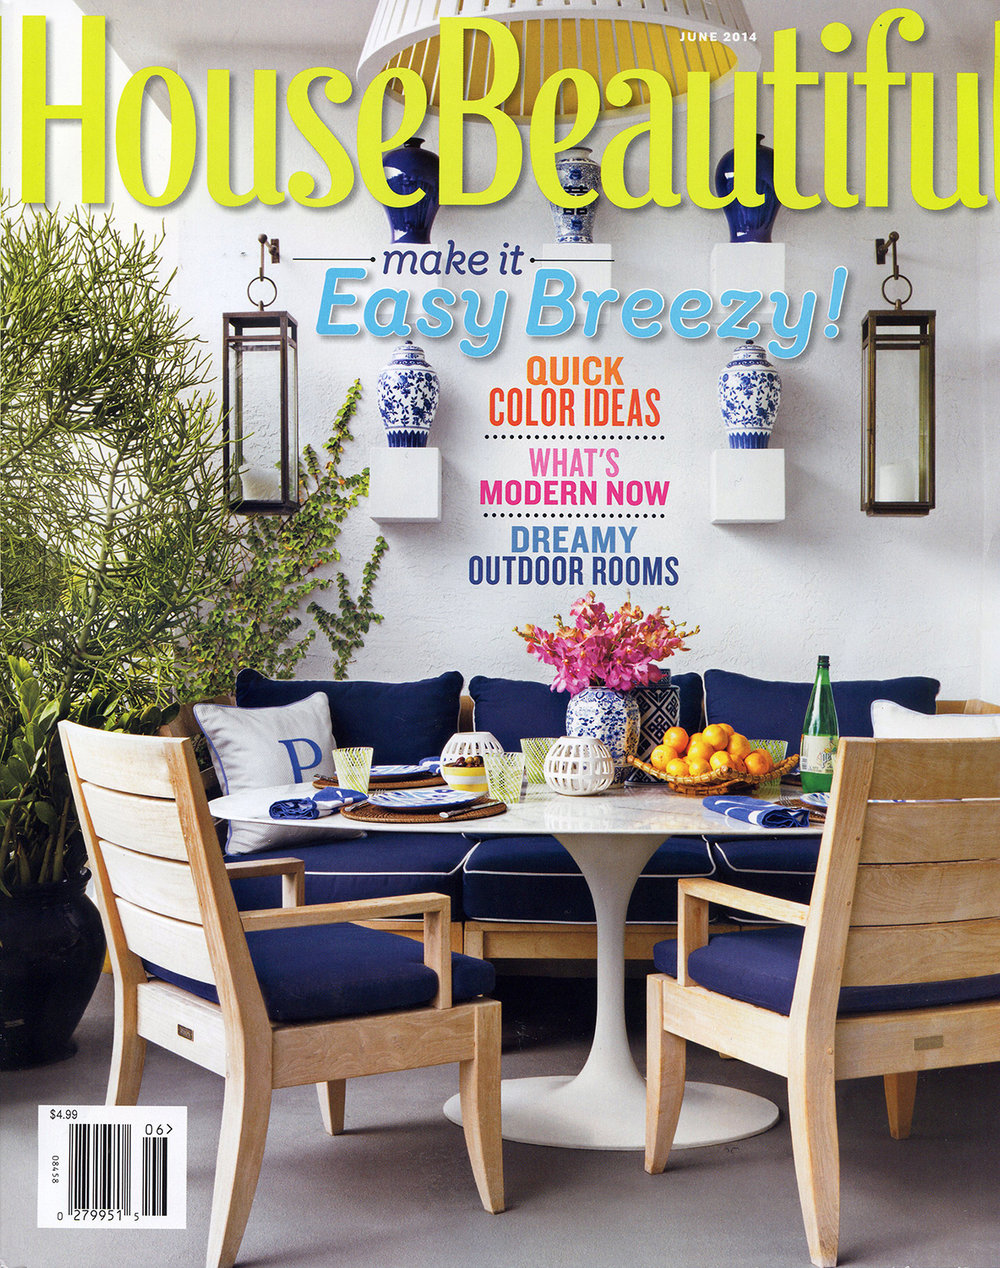 HouseBeautiful_June2014_cover.jpg